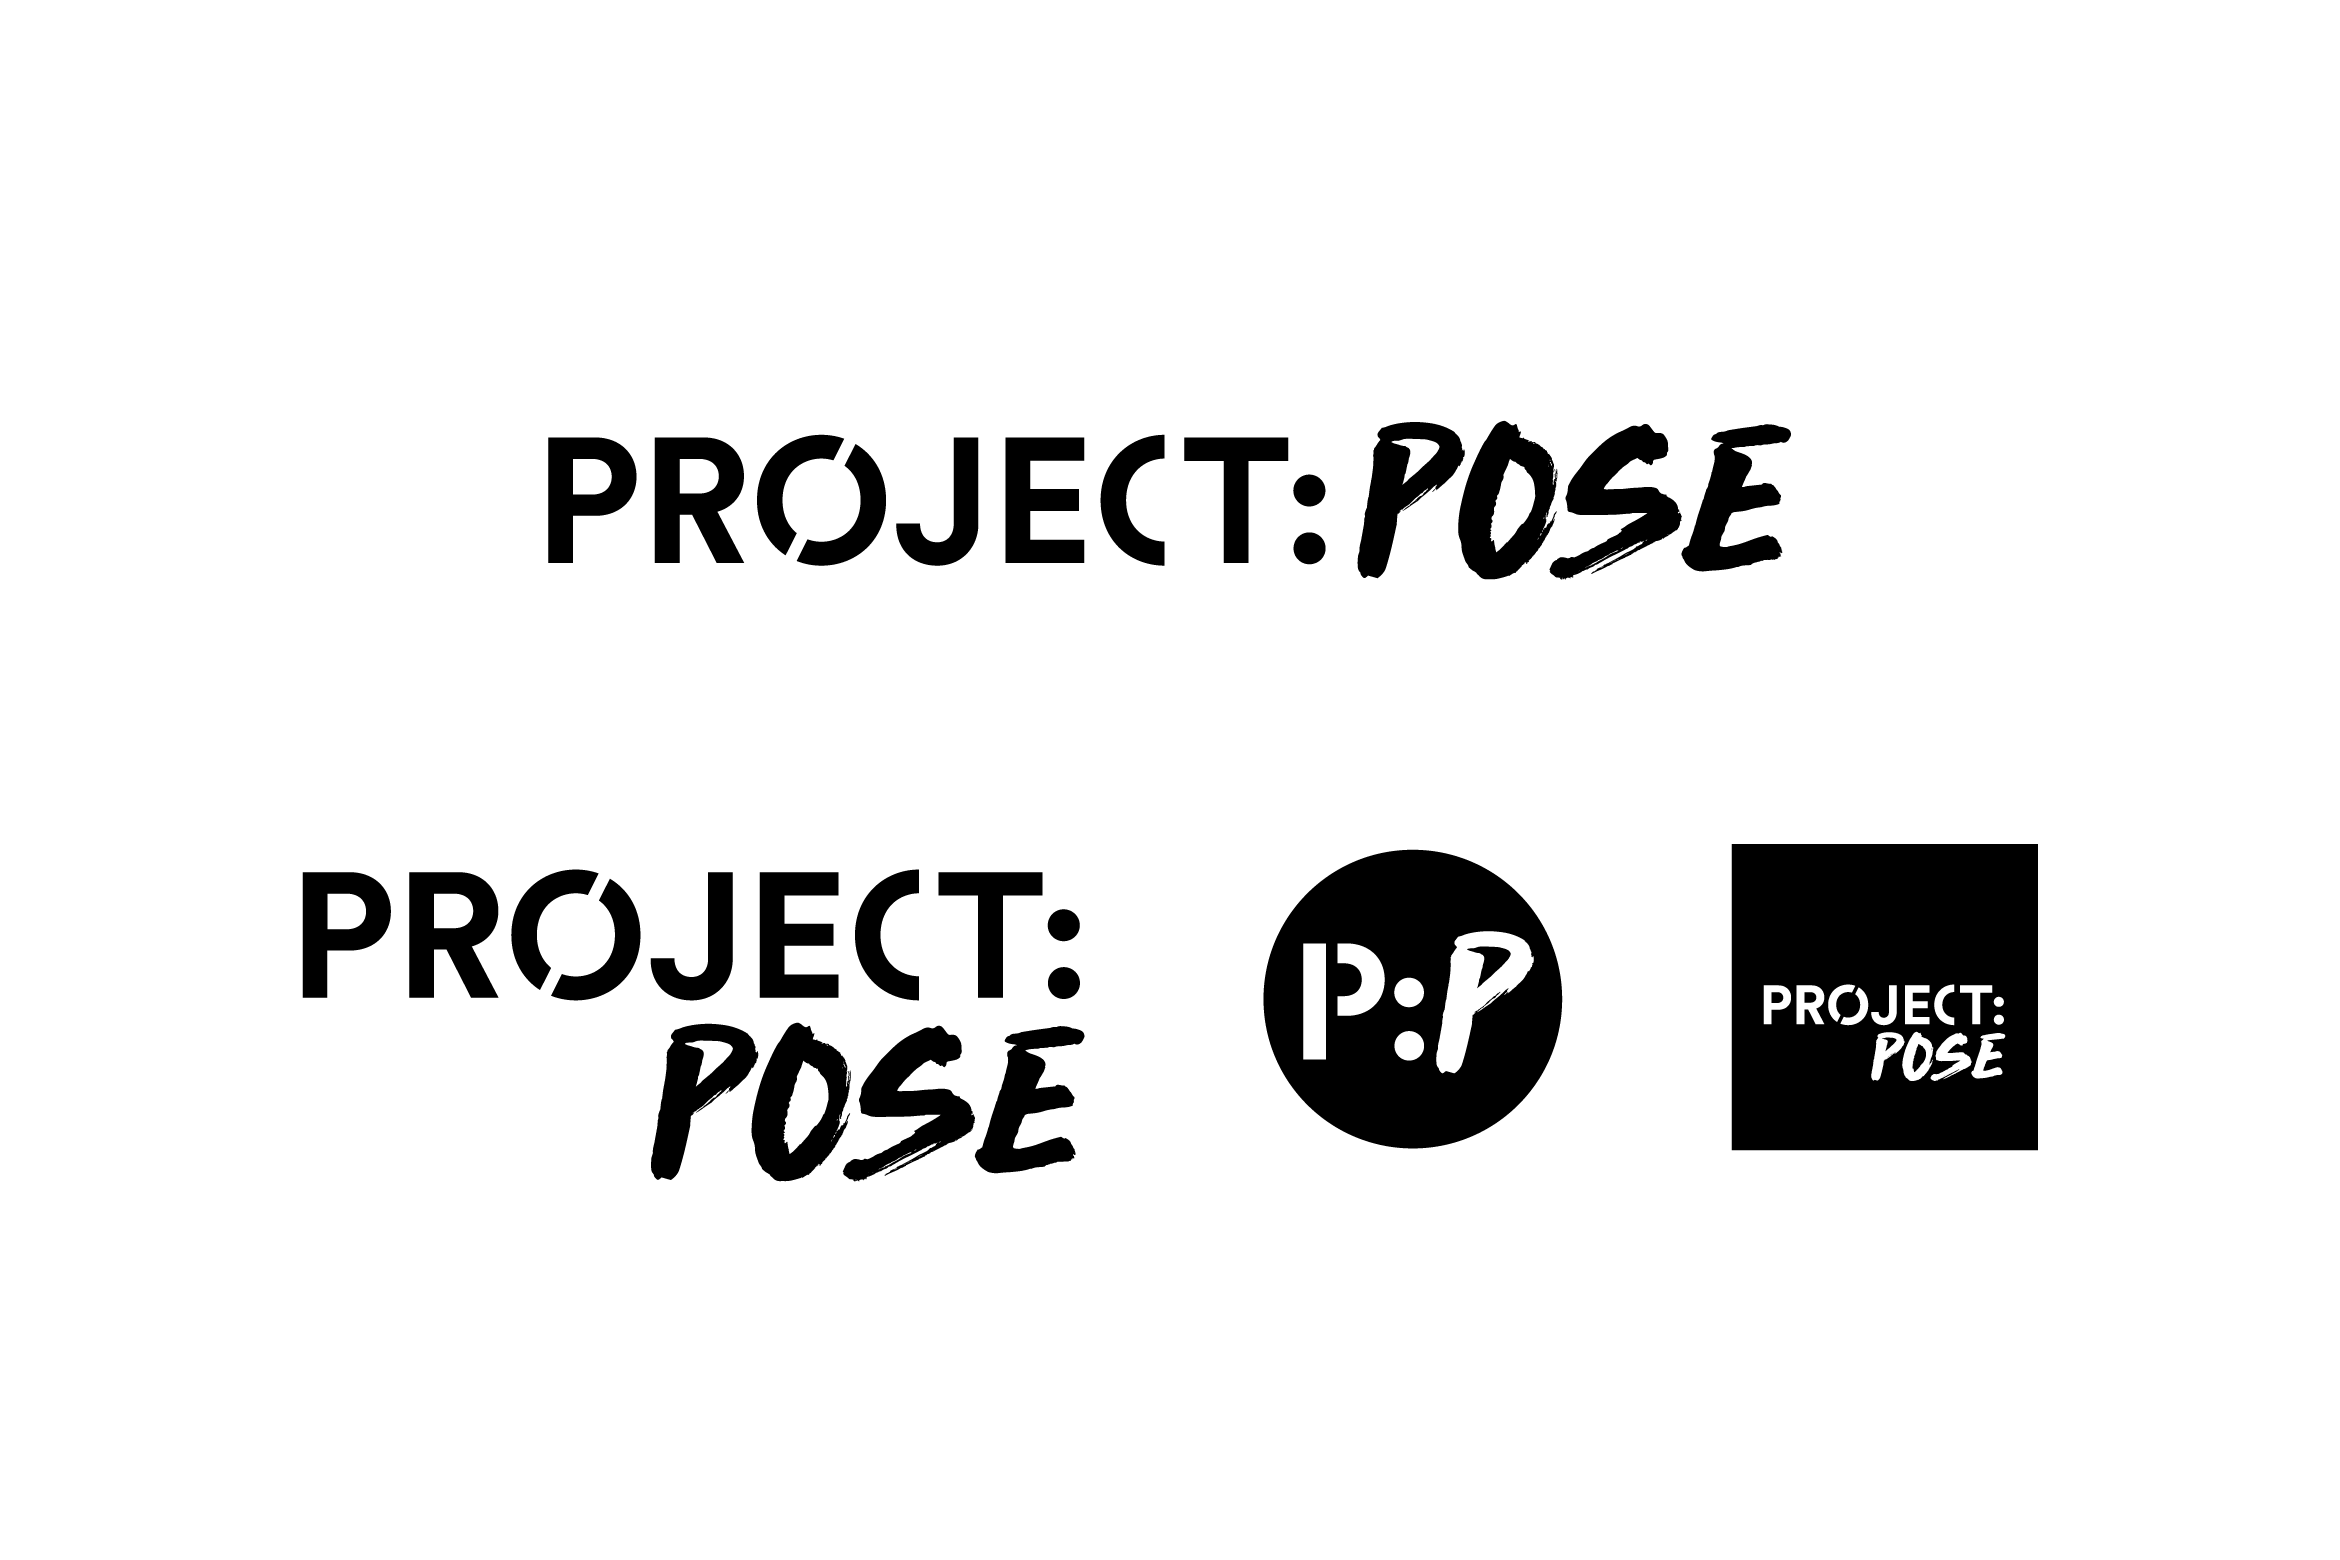 ProjectPose_Logos_1170x780x2.png